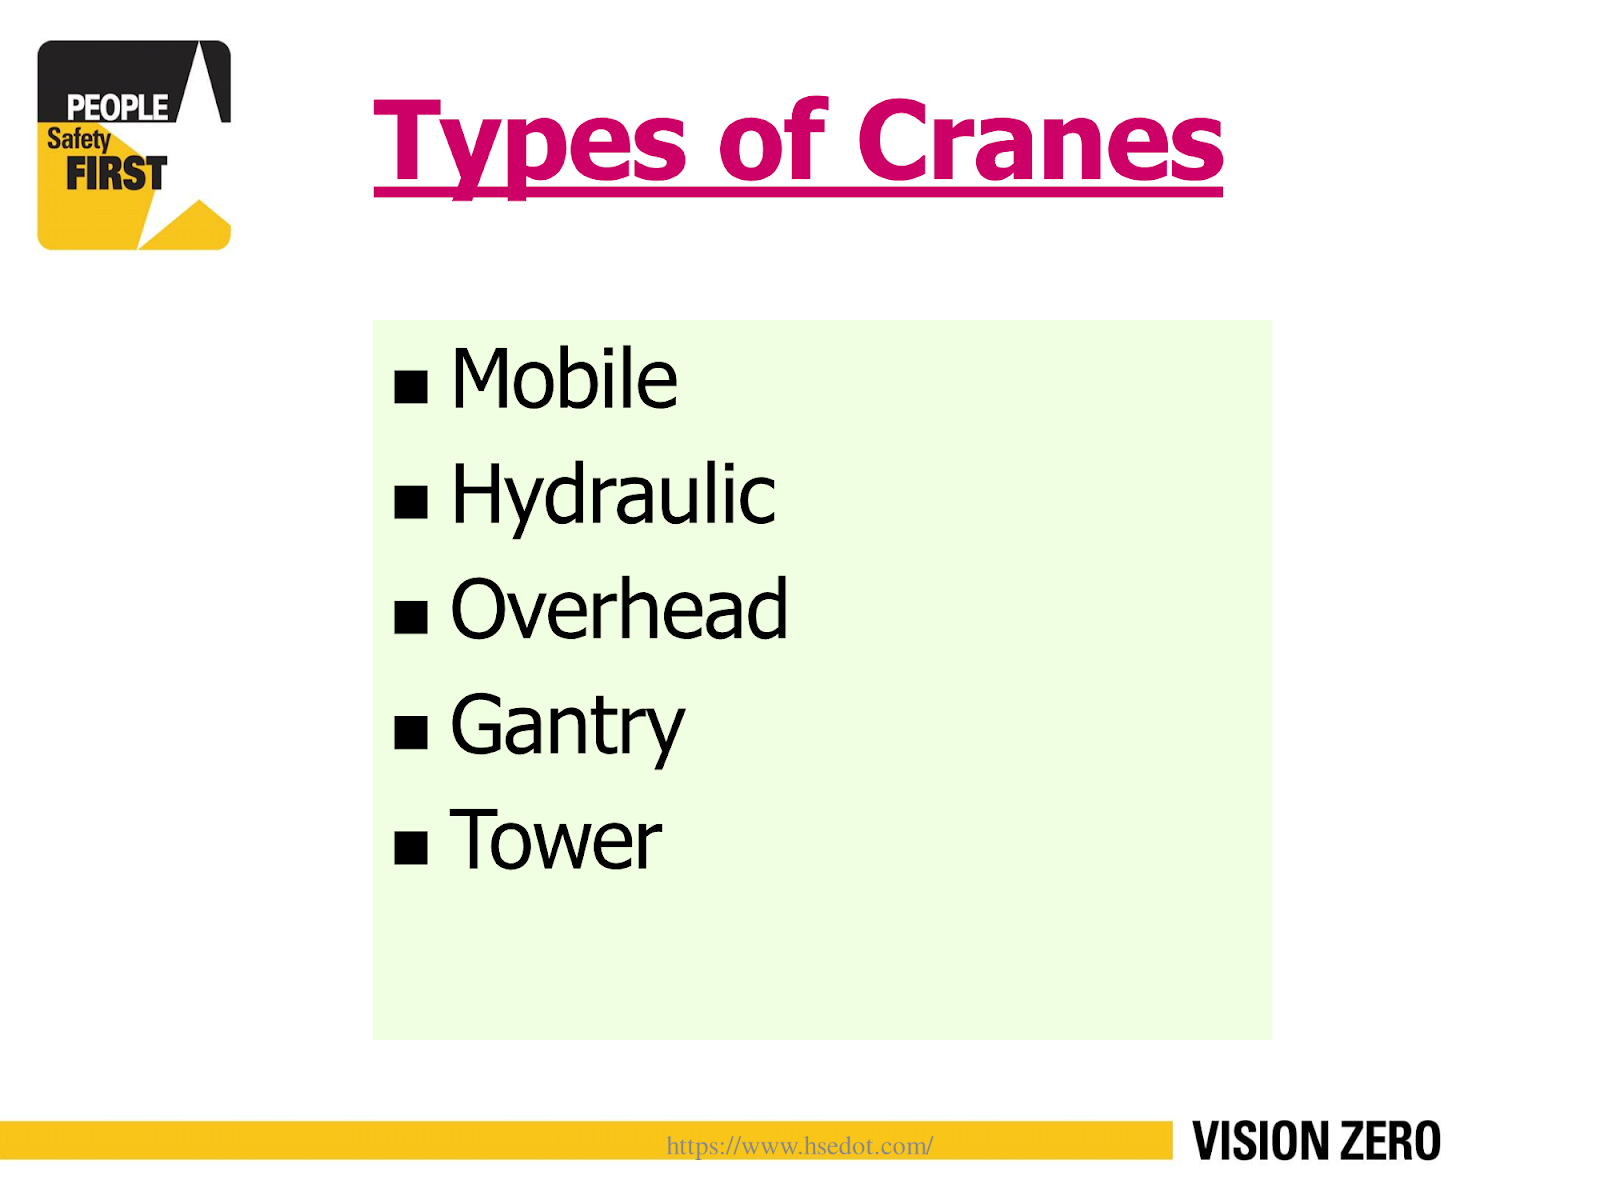 PPT] Mobile Crane Safety Training Material